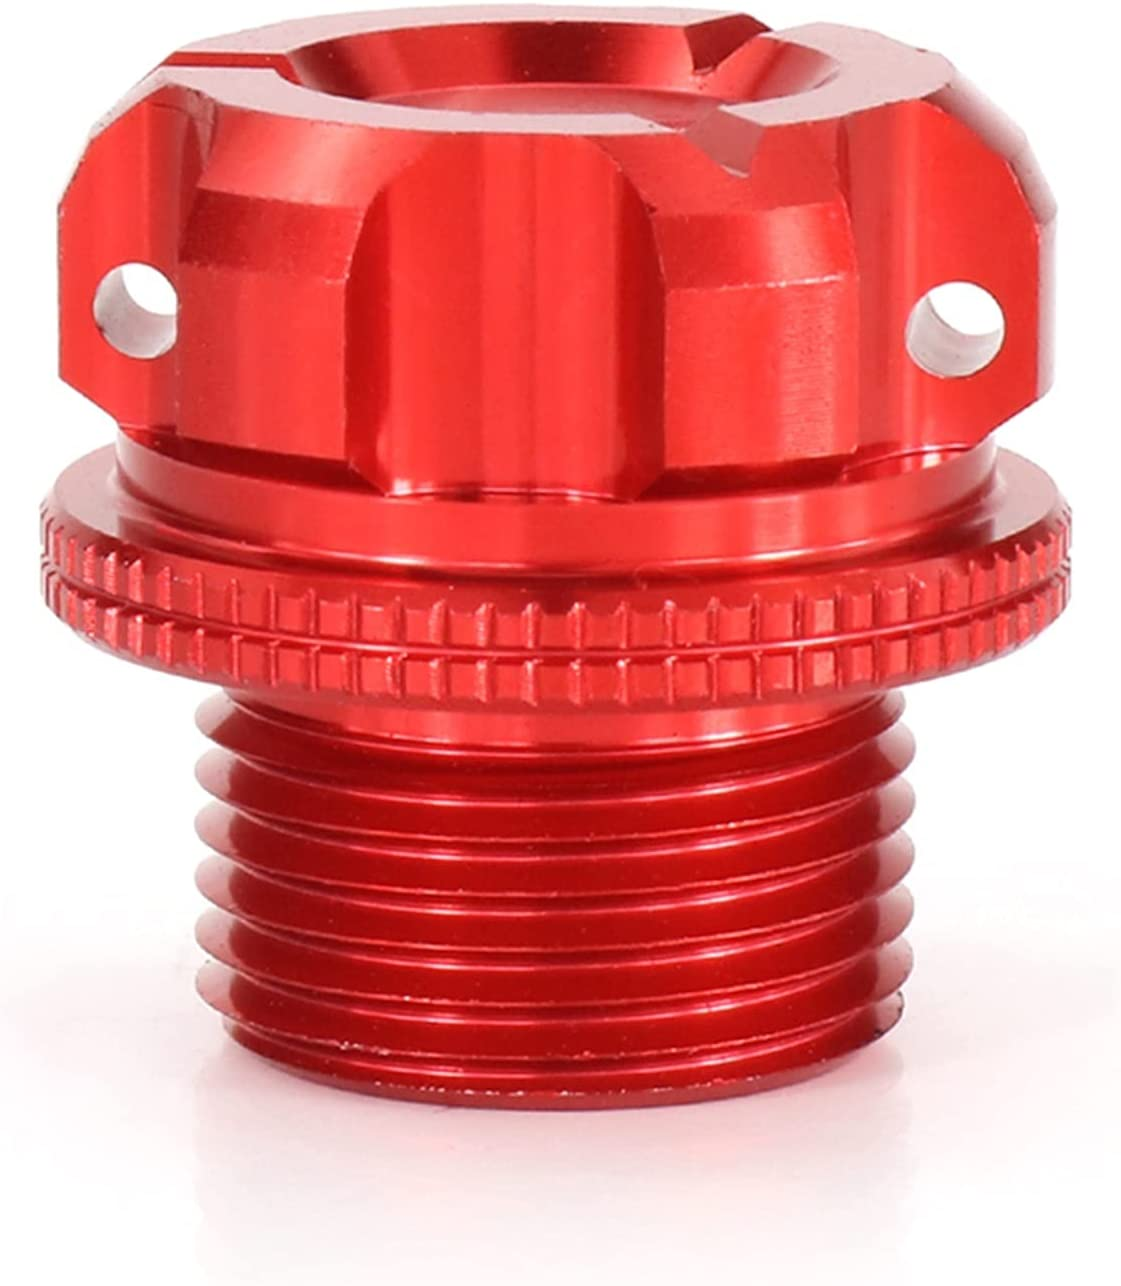 M20X1.5 Fixed price for sale Elegant Motorcycle CNC Engine Oil Filler Cap Fit Cover Filter Fo